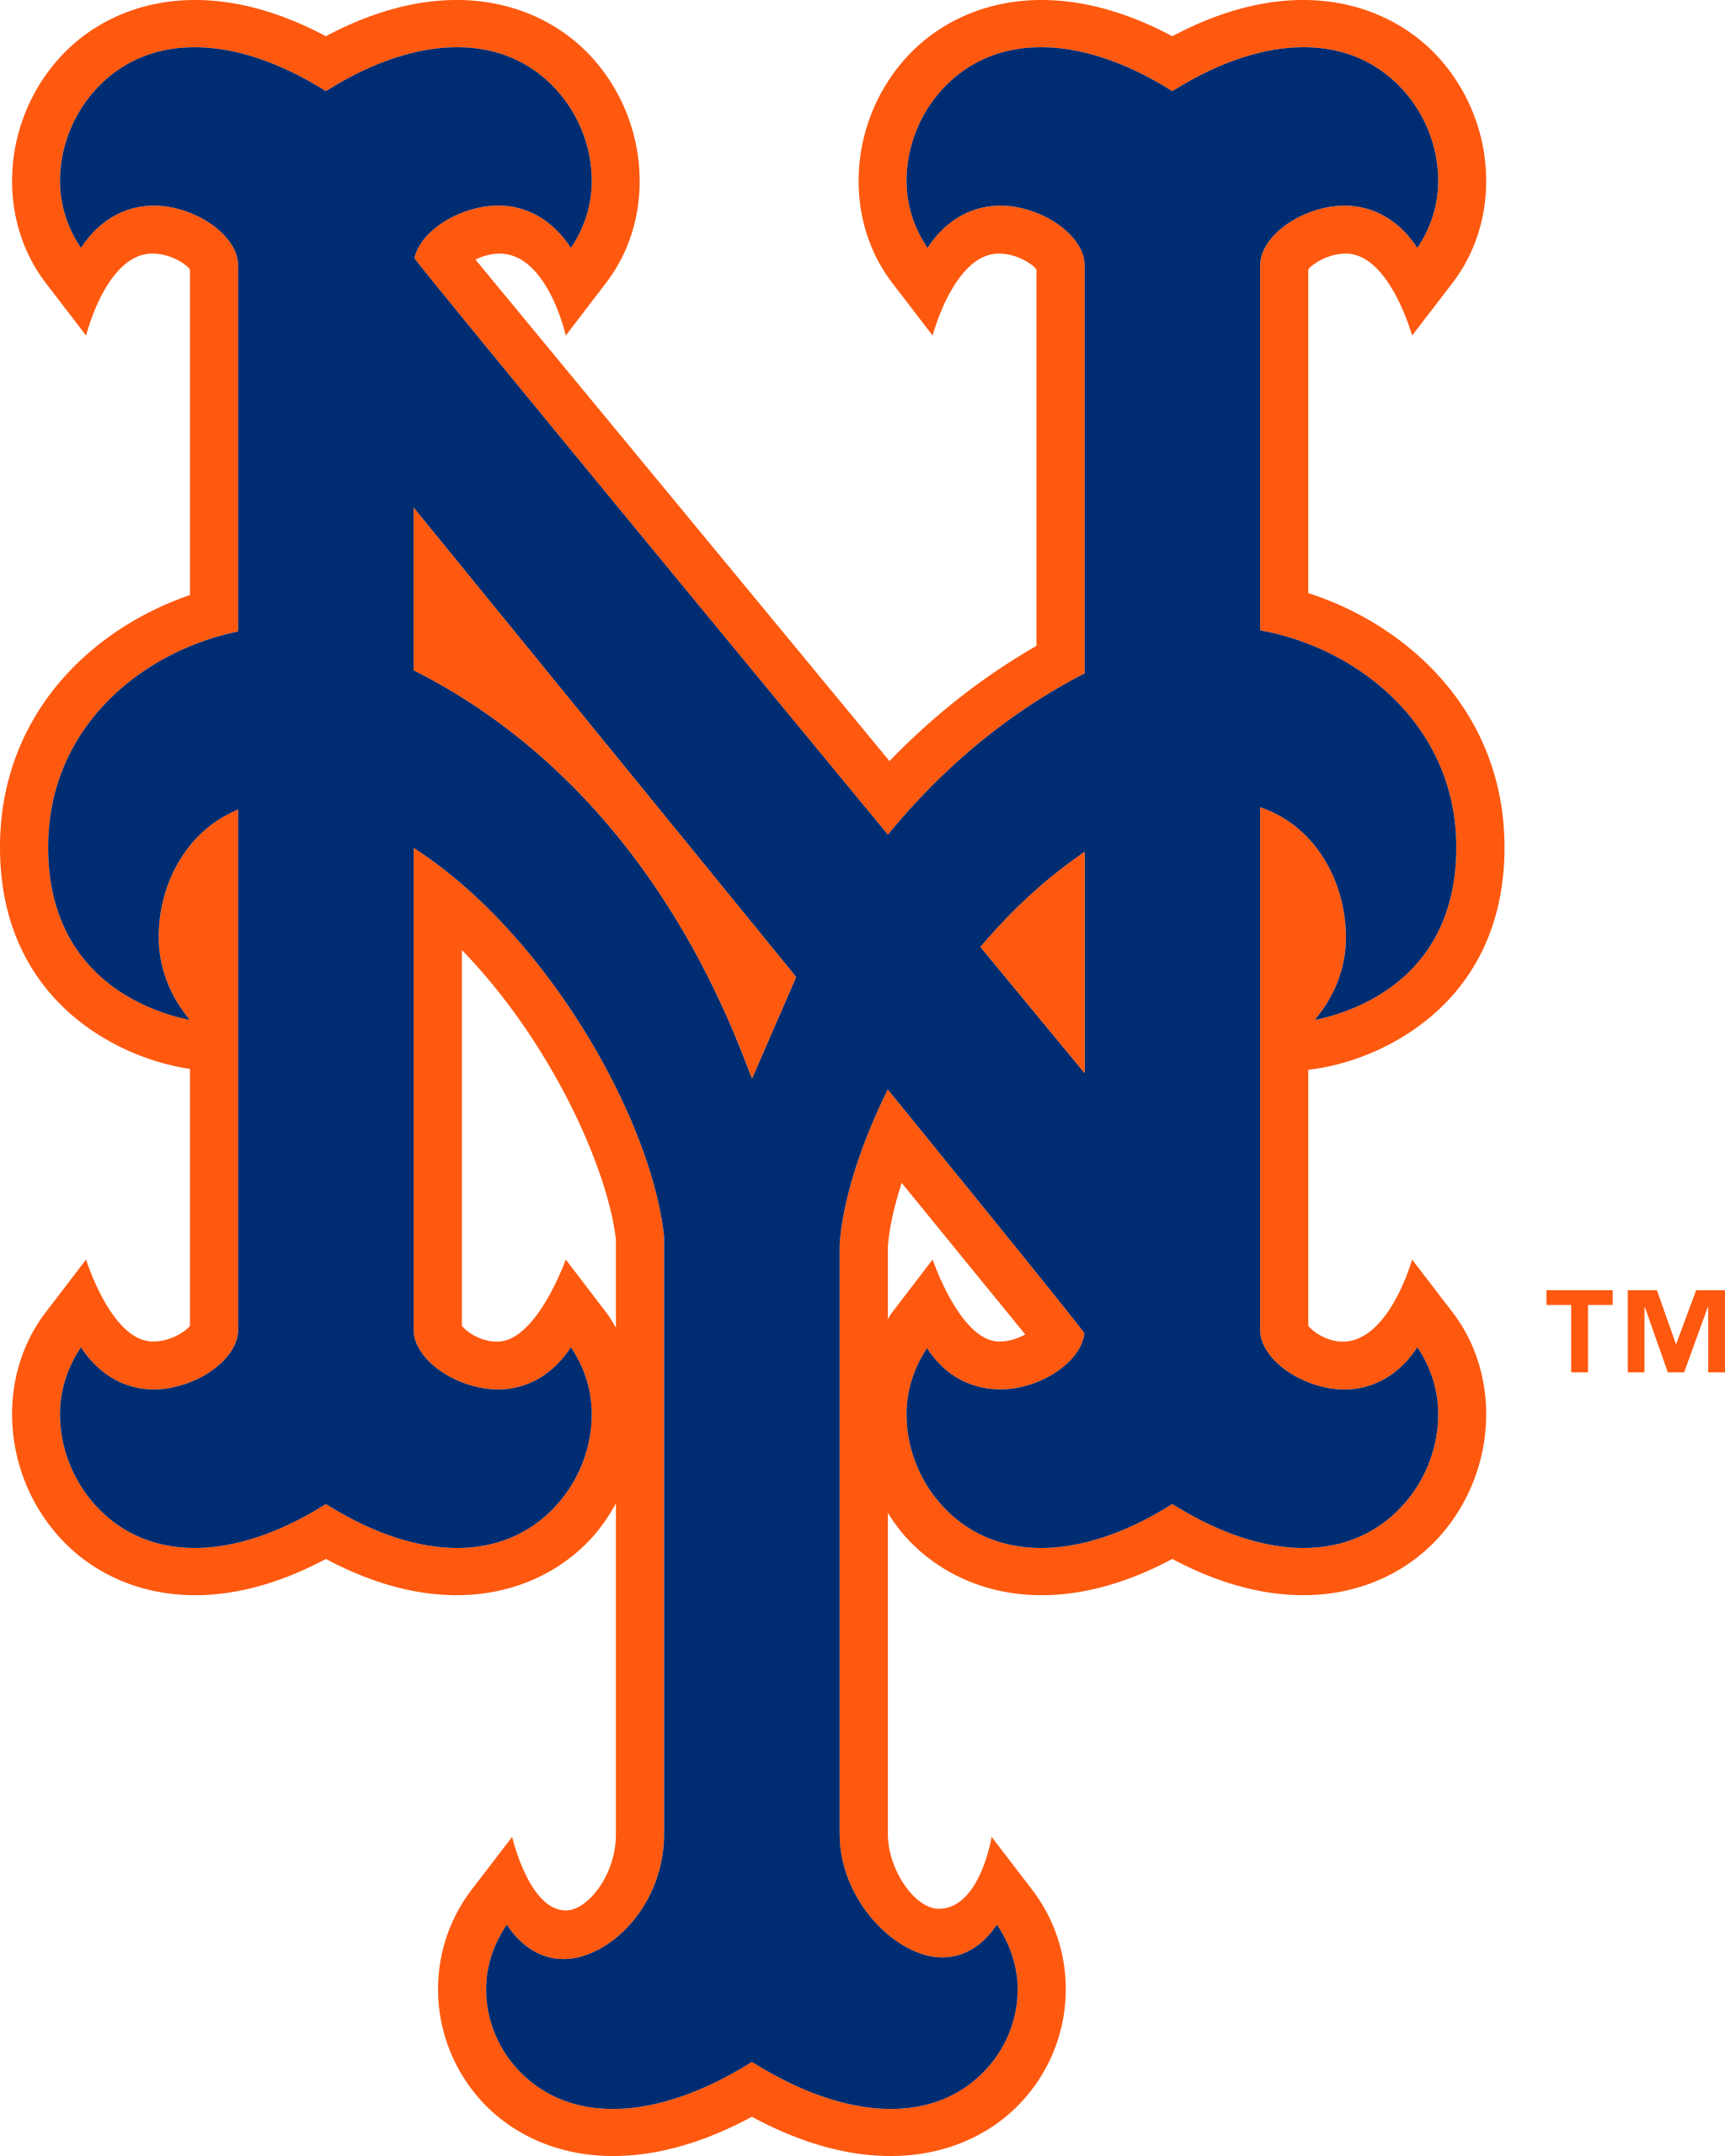 Mets baseball clipart png freeuse library Let the hot stove churn! Free agency in MLB has begun « Just Mets png freeuse library